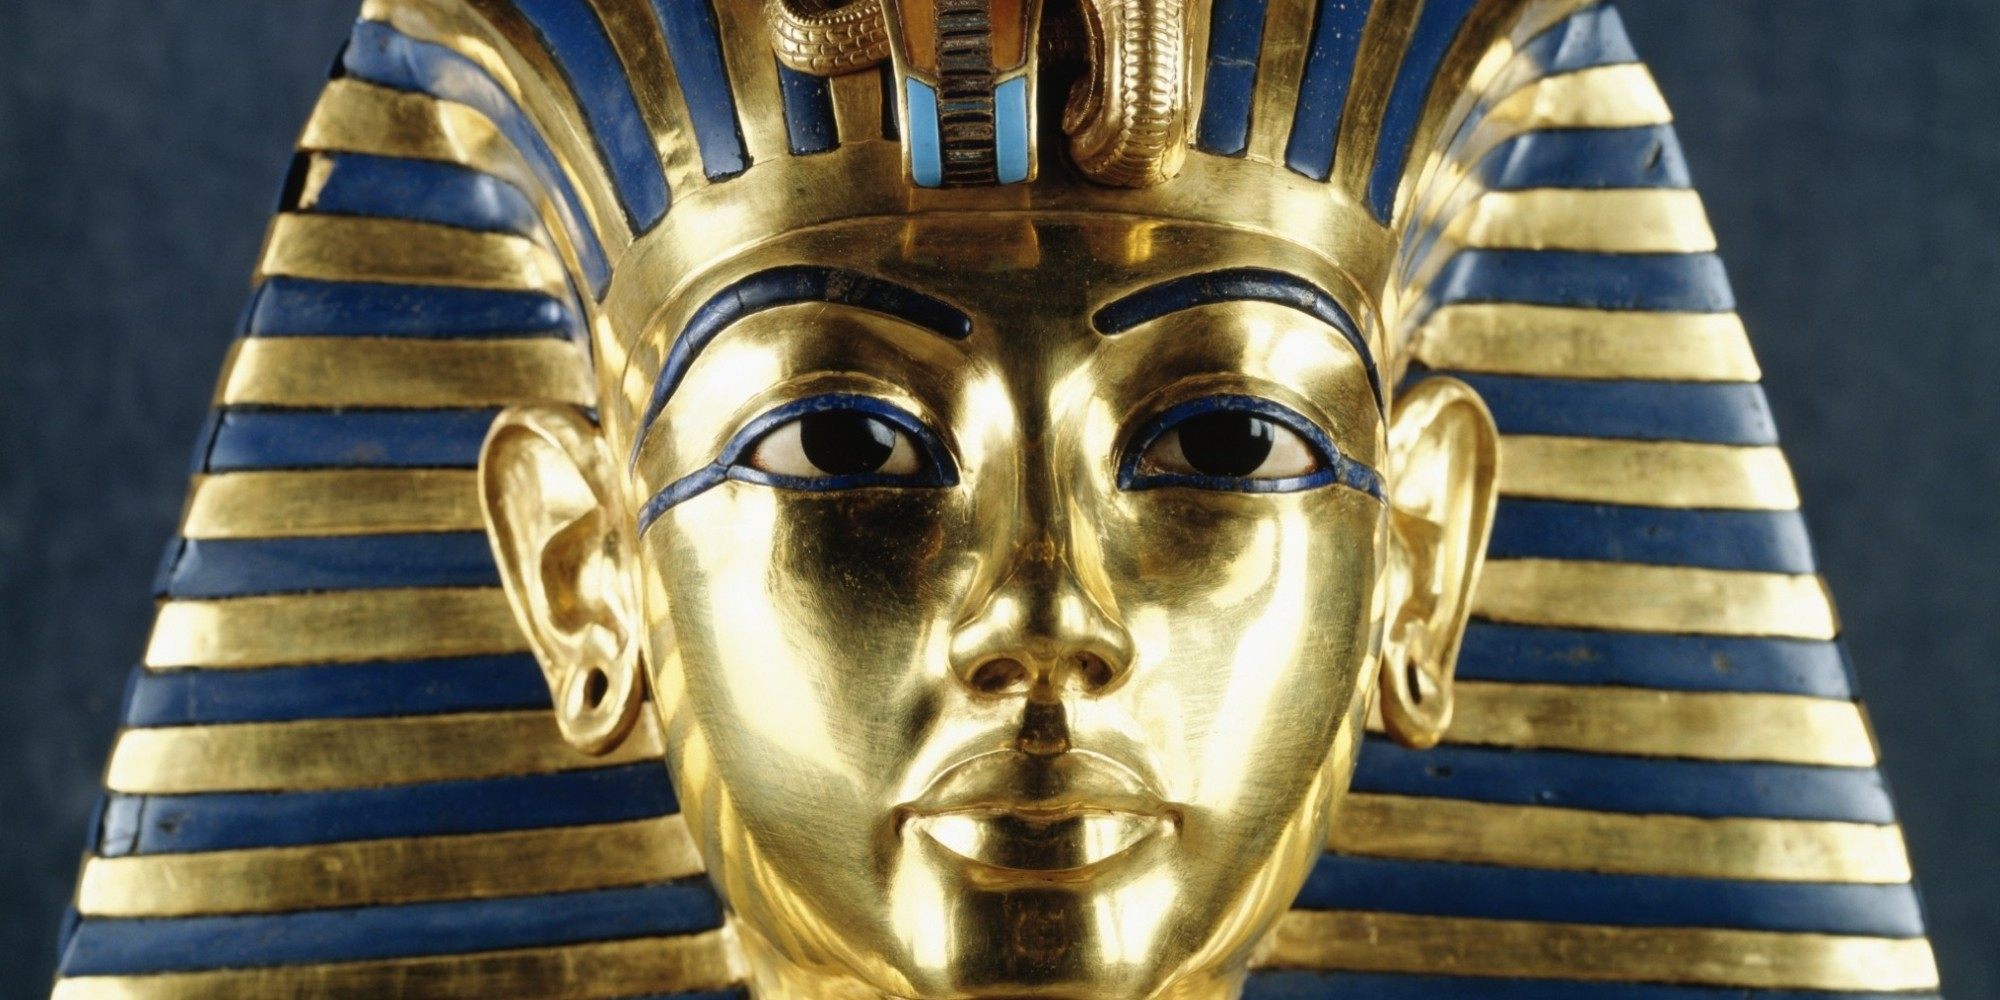 The mask of Tutankhamun credit: DE AGOSTINI / A. JEMOLO VIA GETTY IMAGES